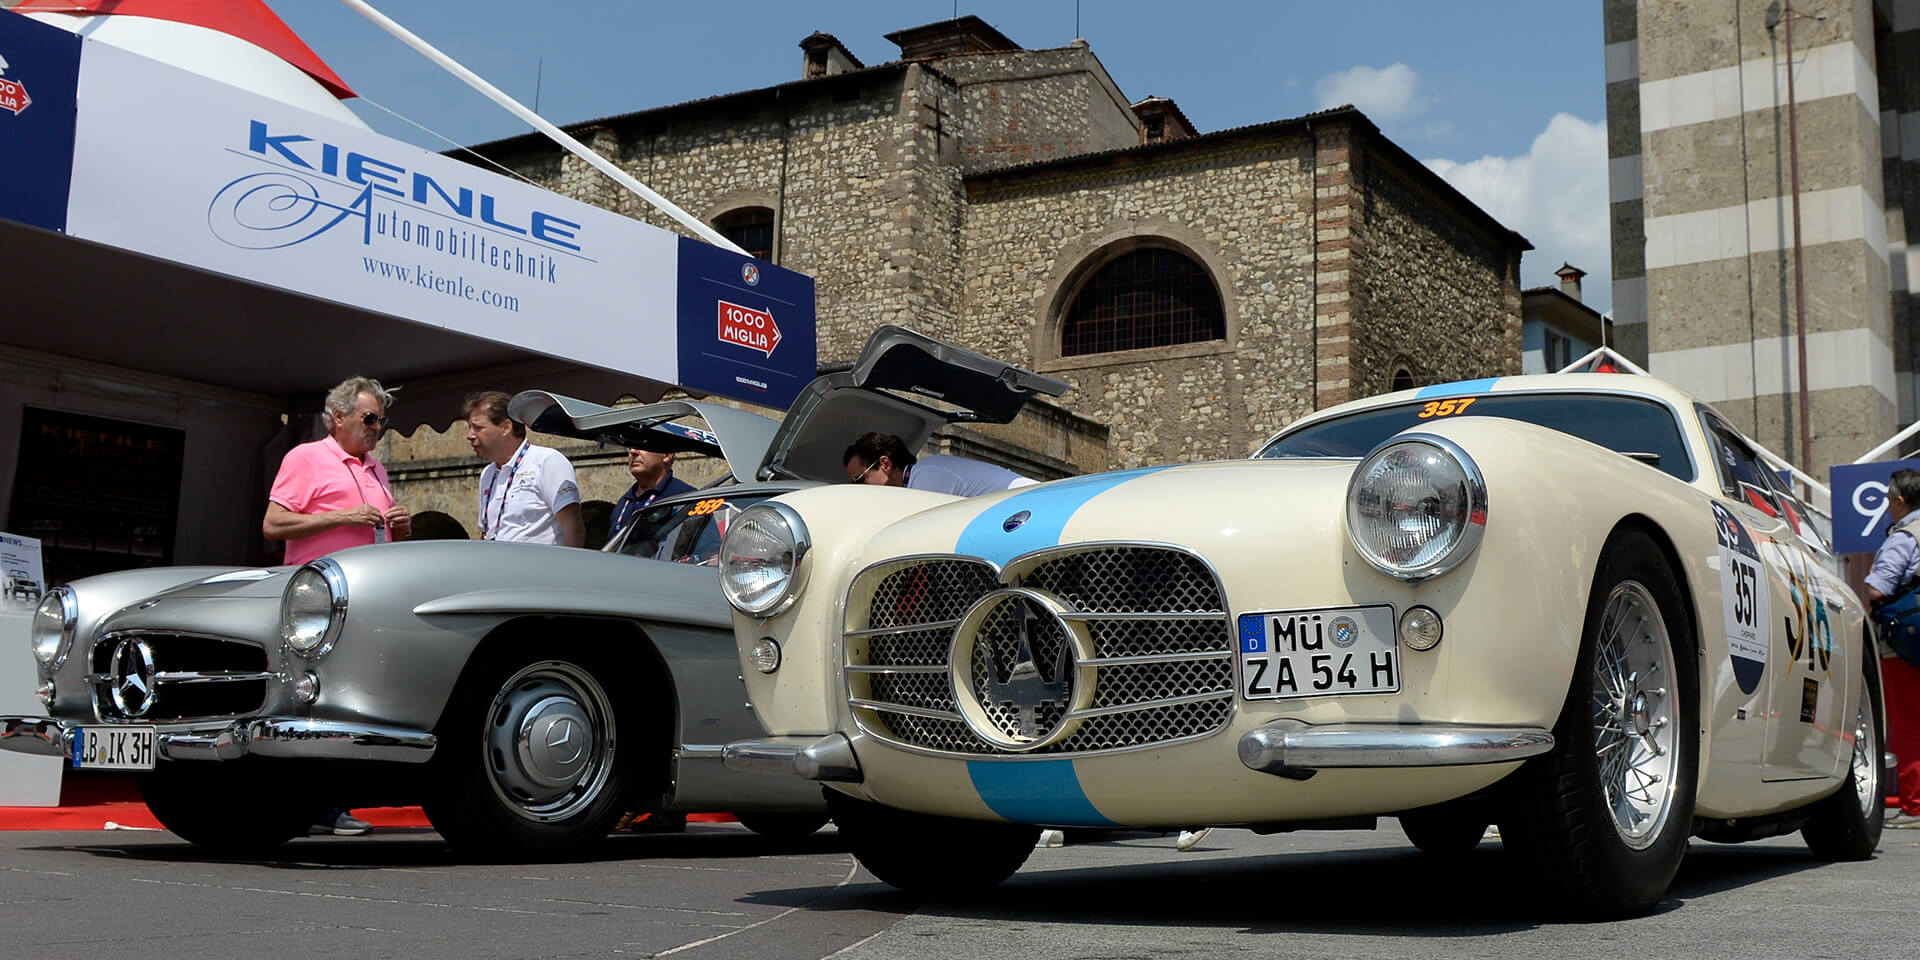 Maserati and Mercedes 300 SL at the Mille Miglia